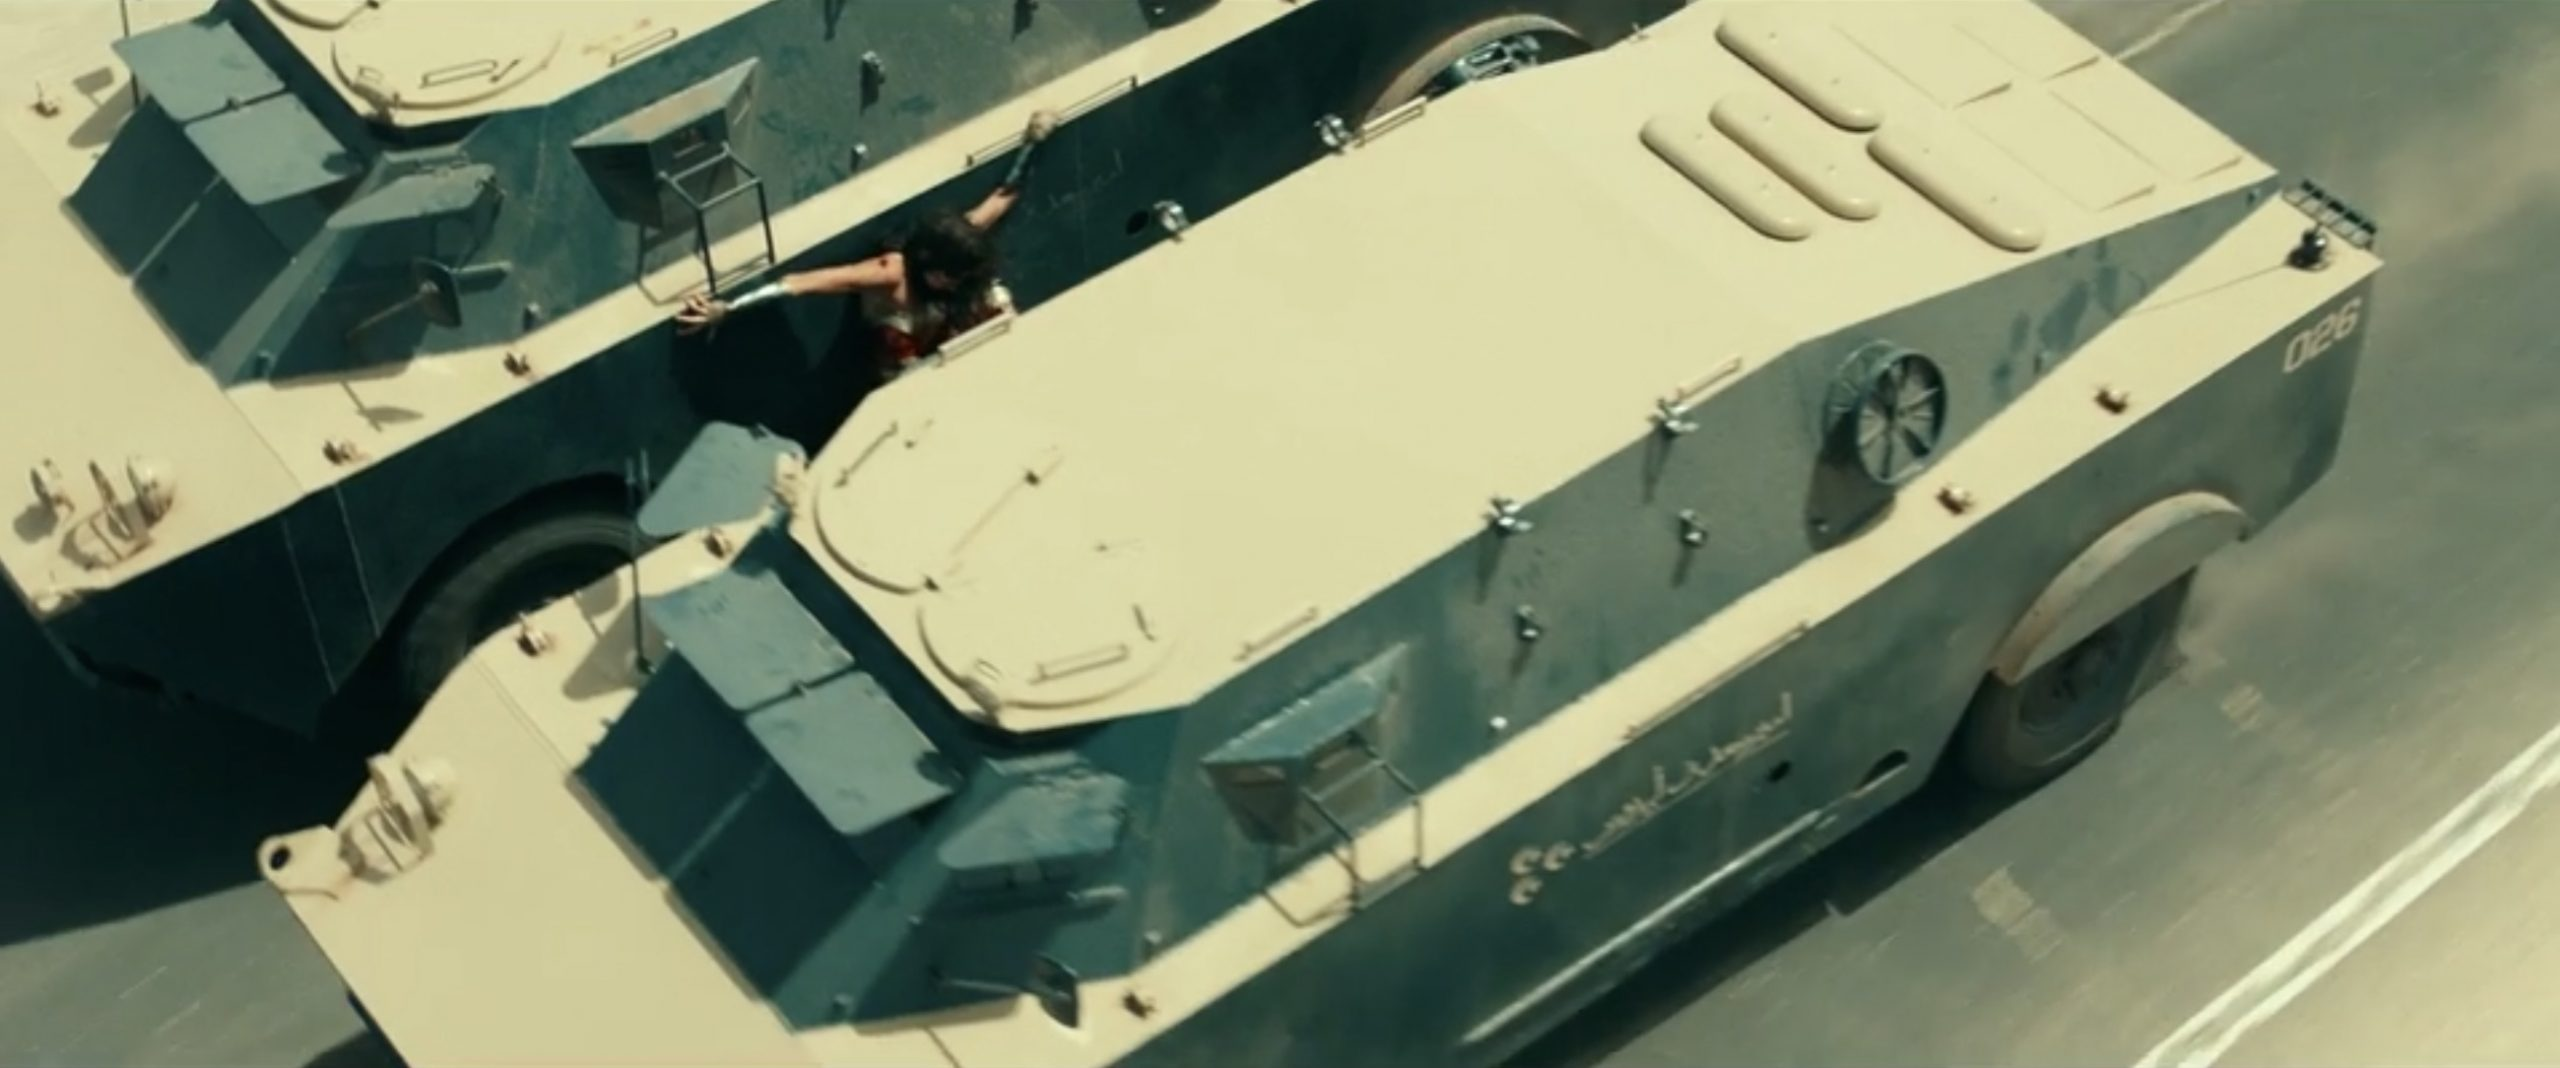 military transport chase scene action